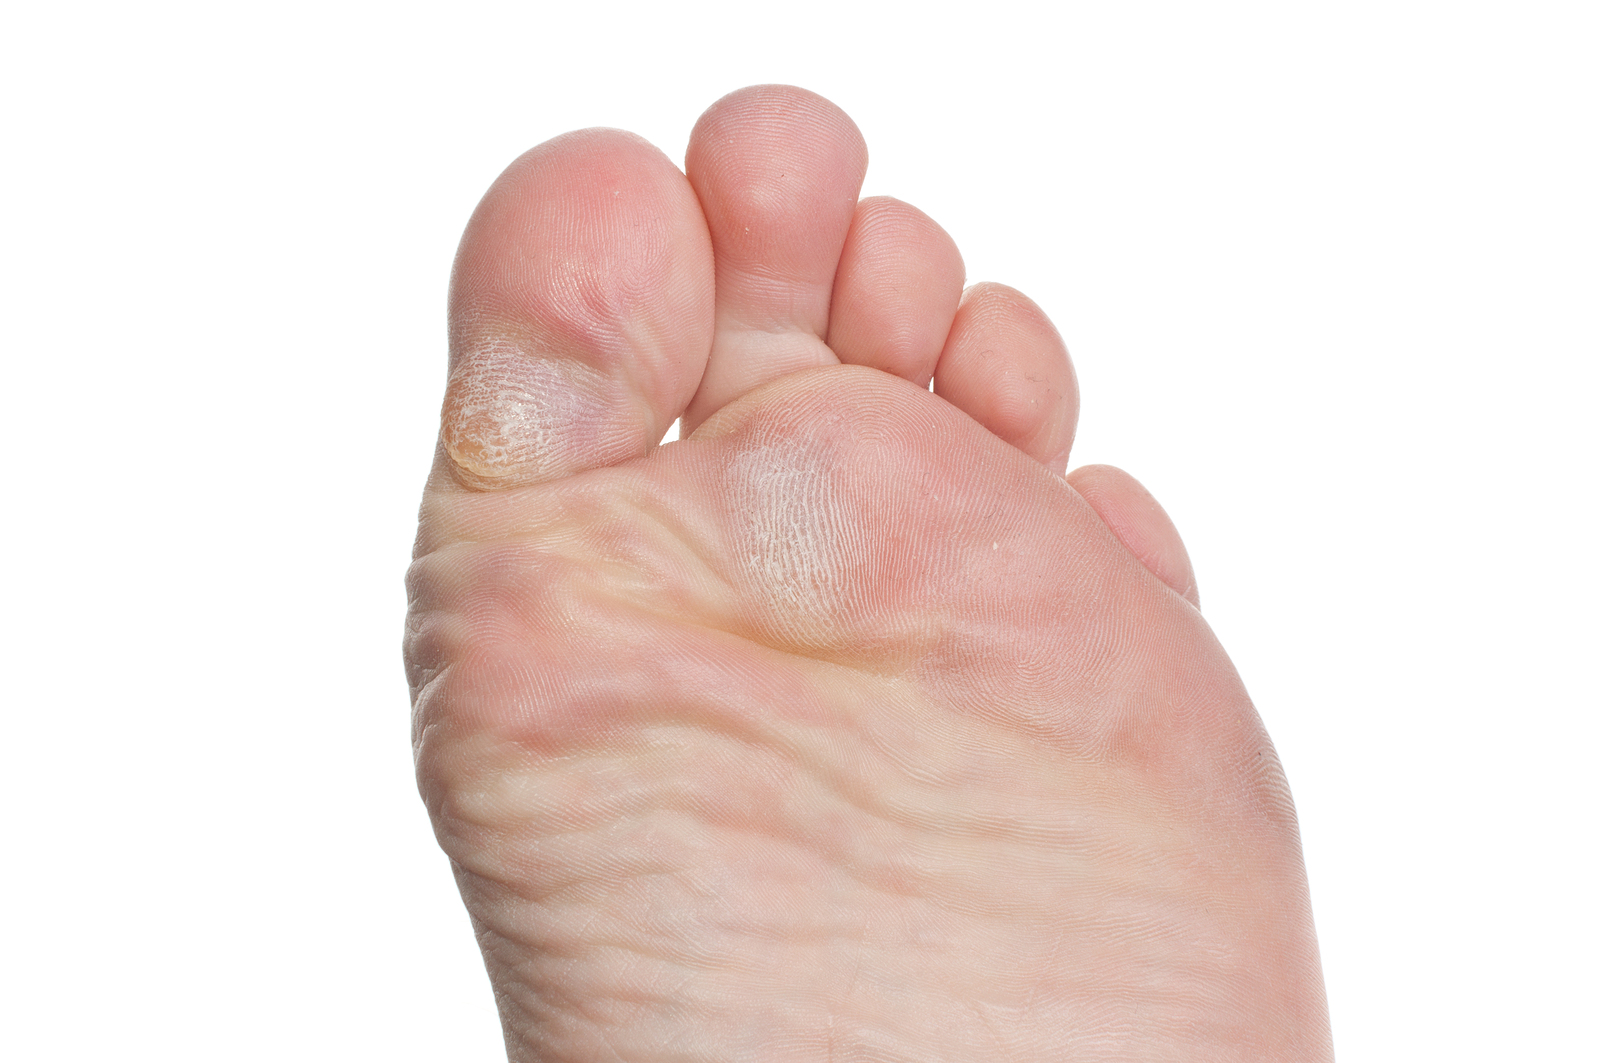 Painful callouses on bottom of feet